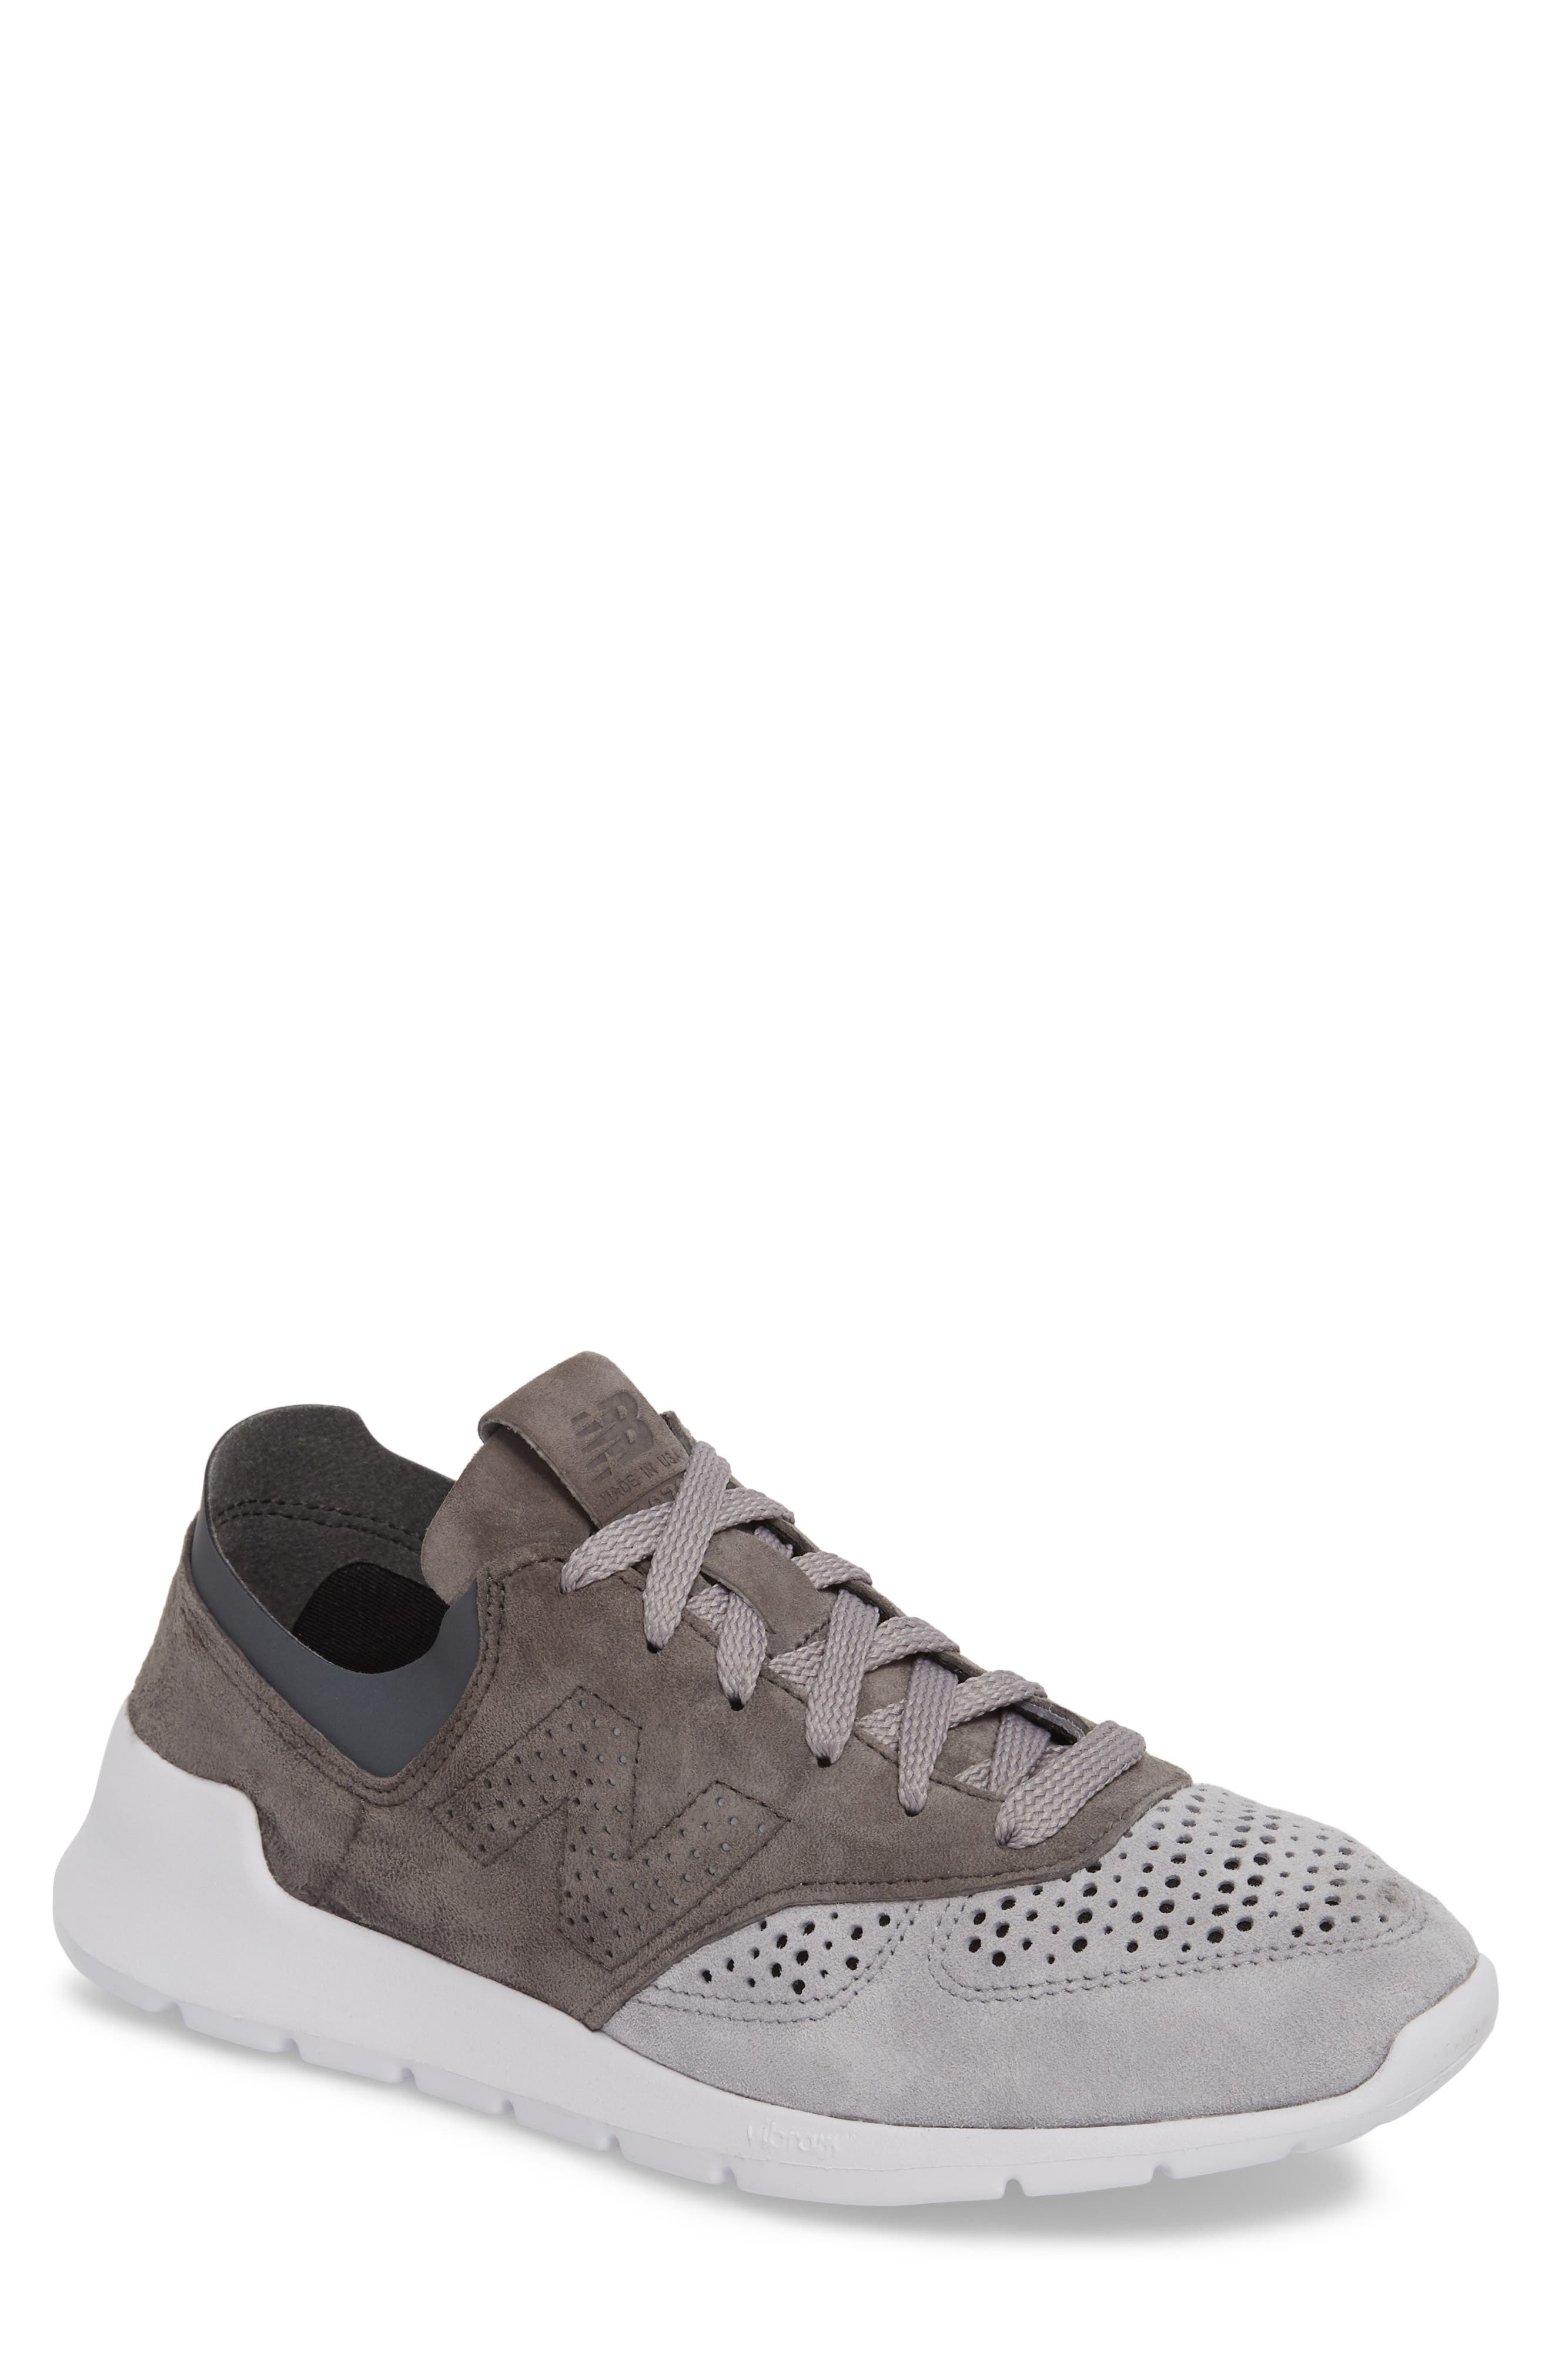 1978 Perforated Sneaker,                             Main thumbnail 1, color,